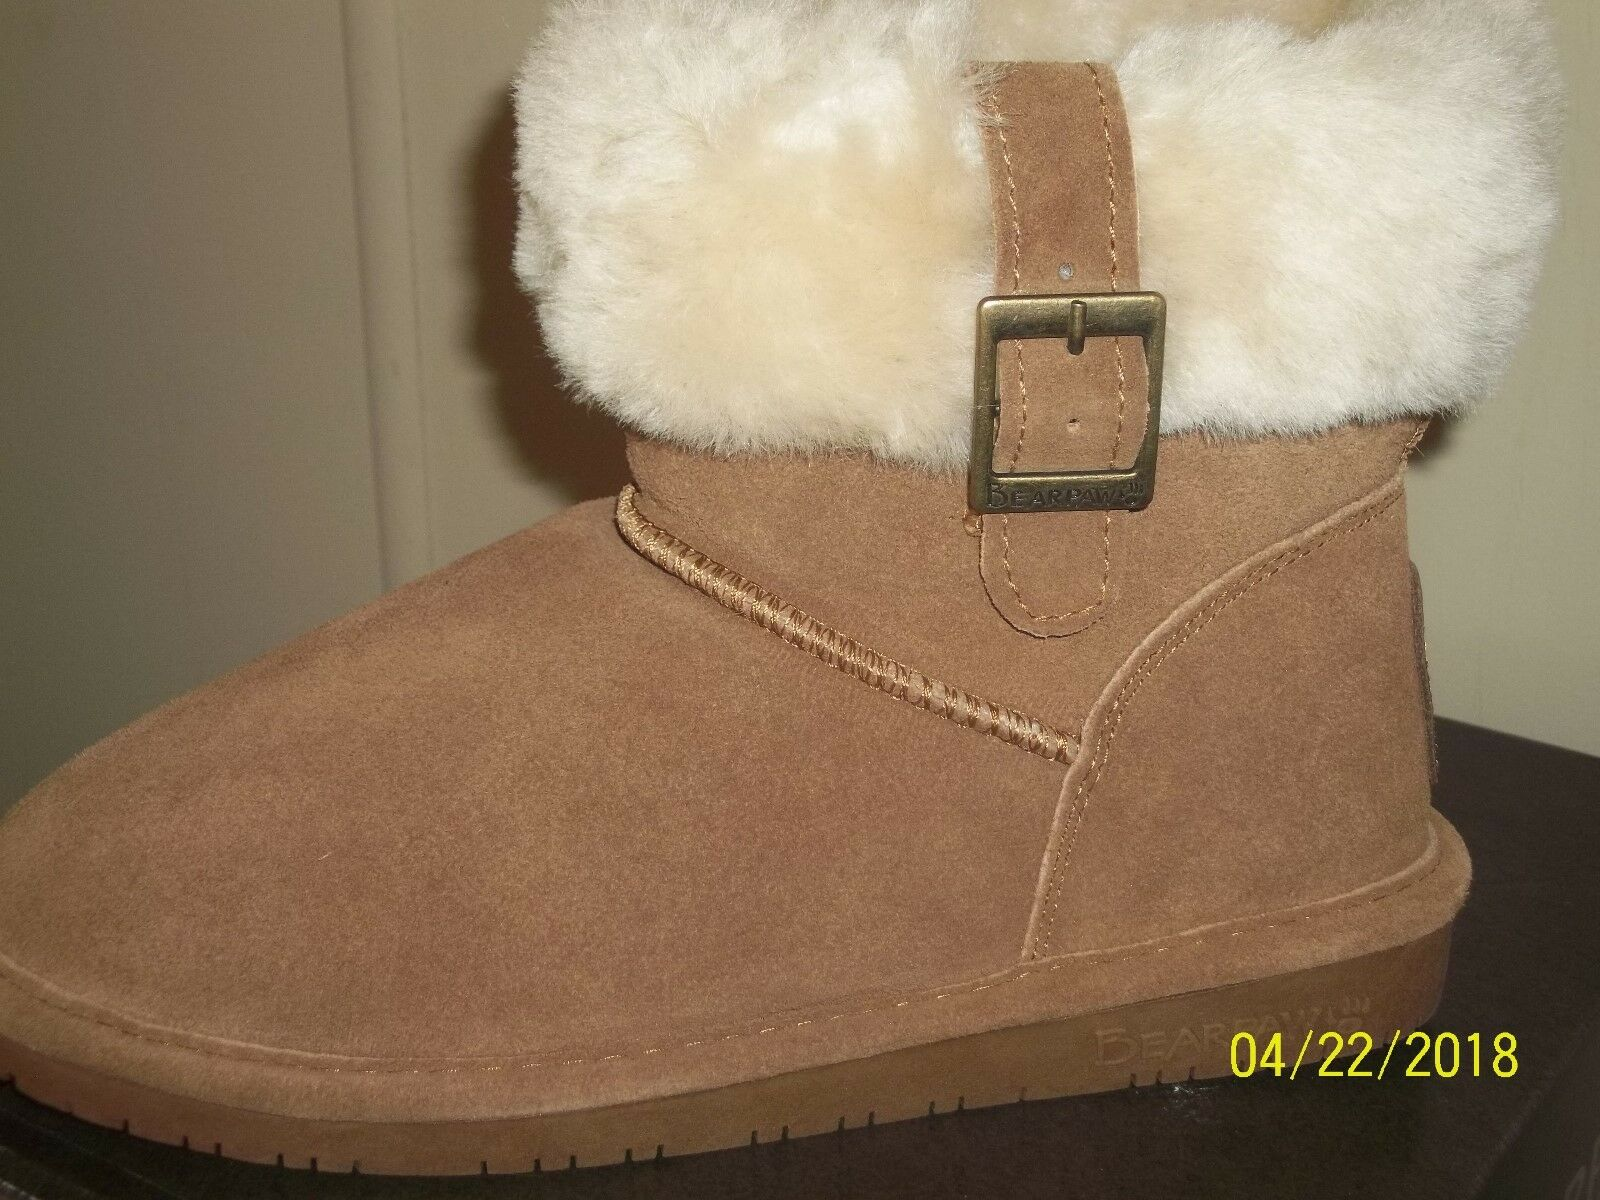 Bearpaw Womens Boots Slippers Brown Sheepskin Lined Size US 7 7 7 EU 38 e21a3e